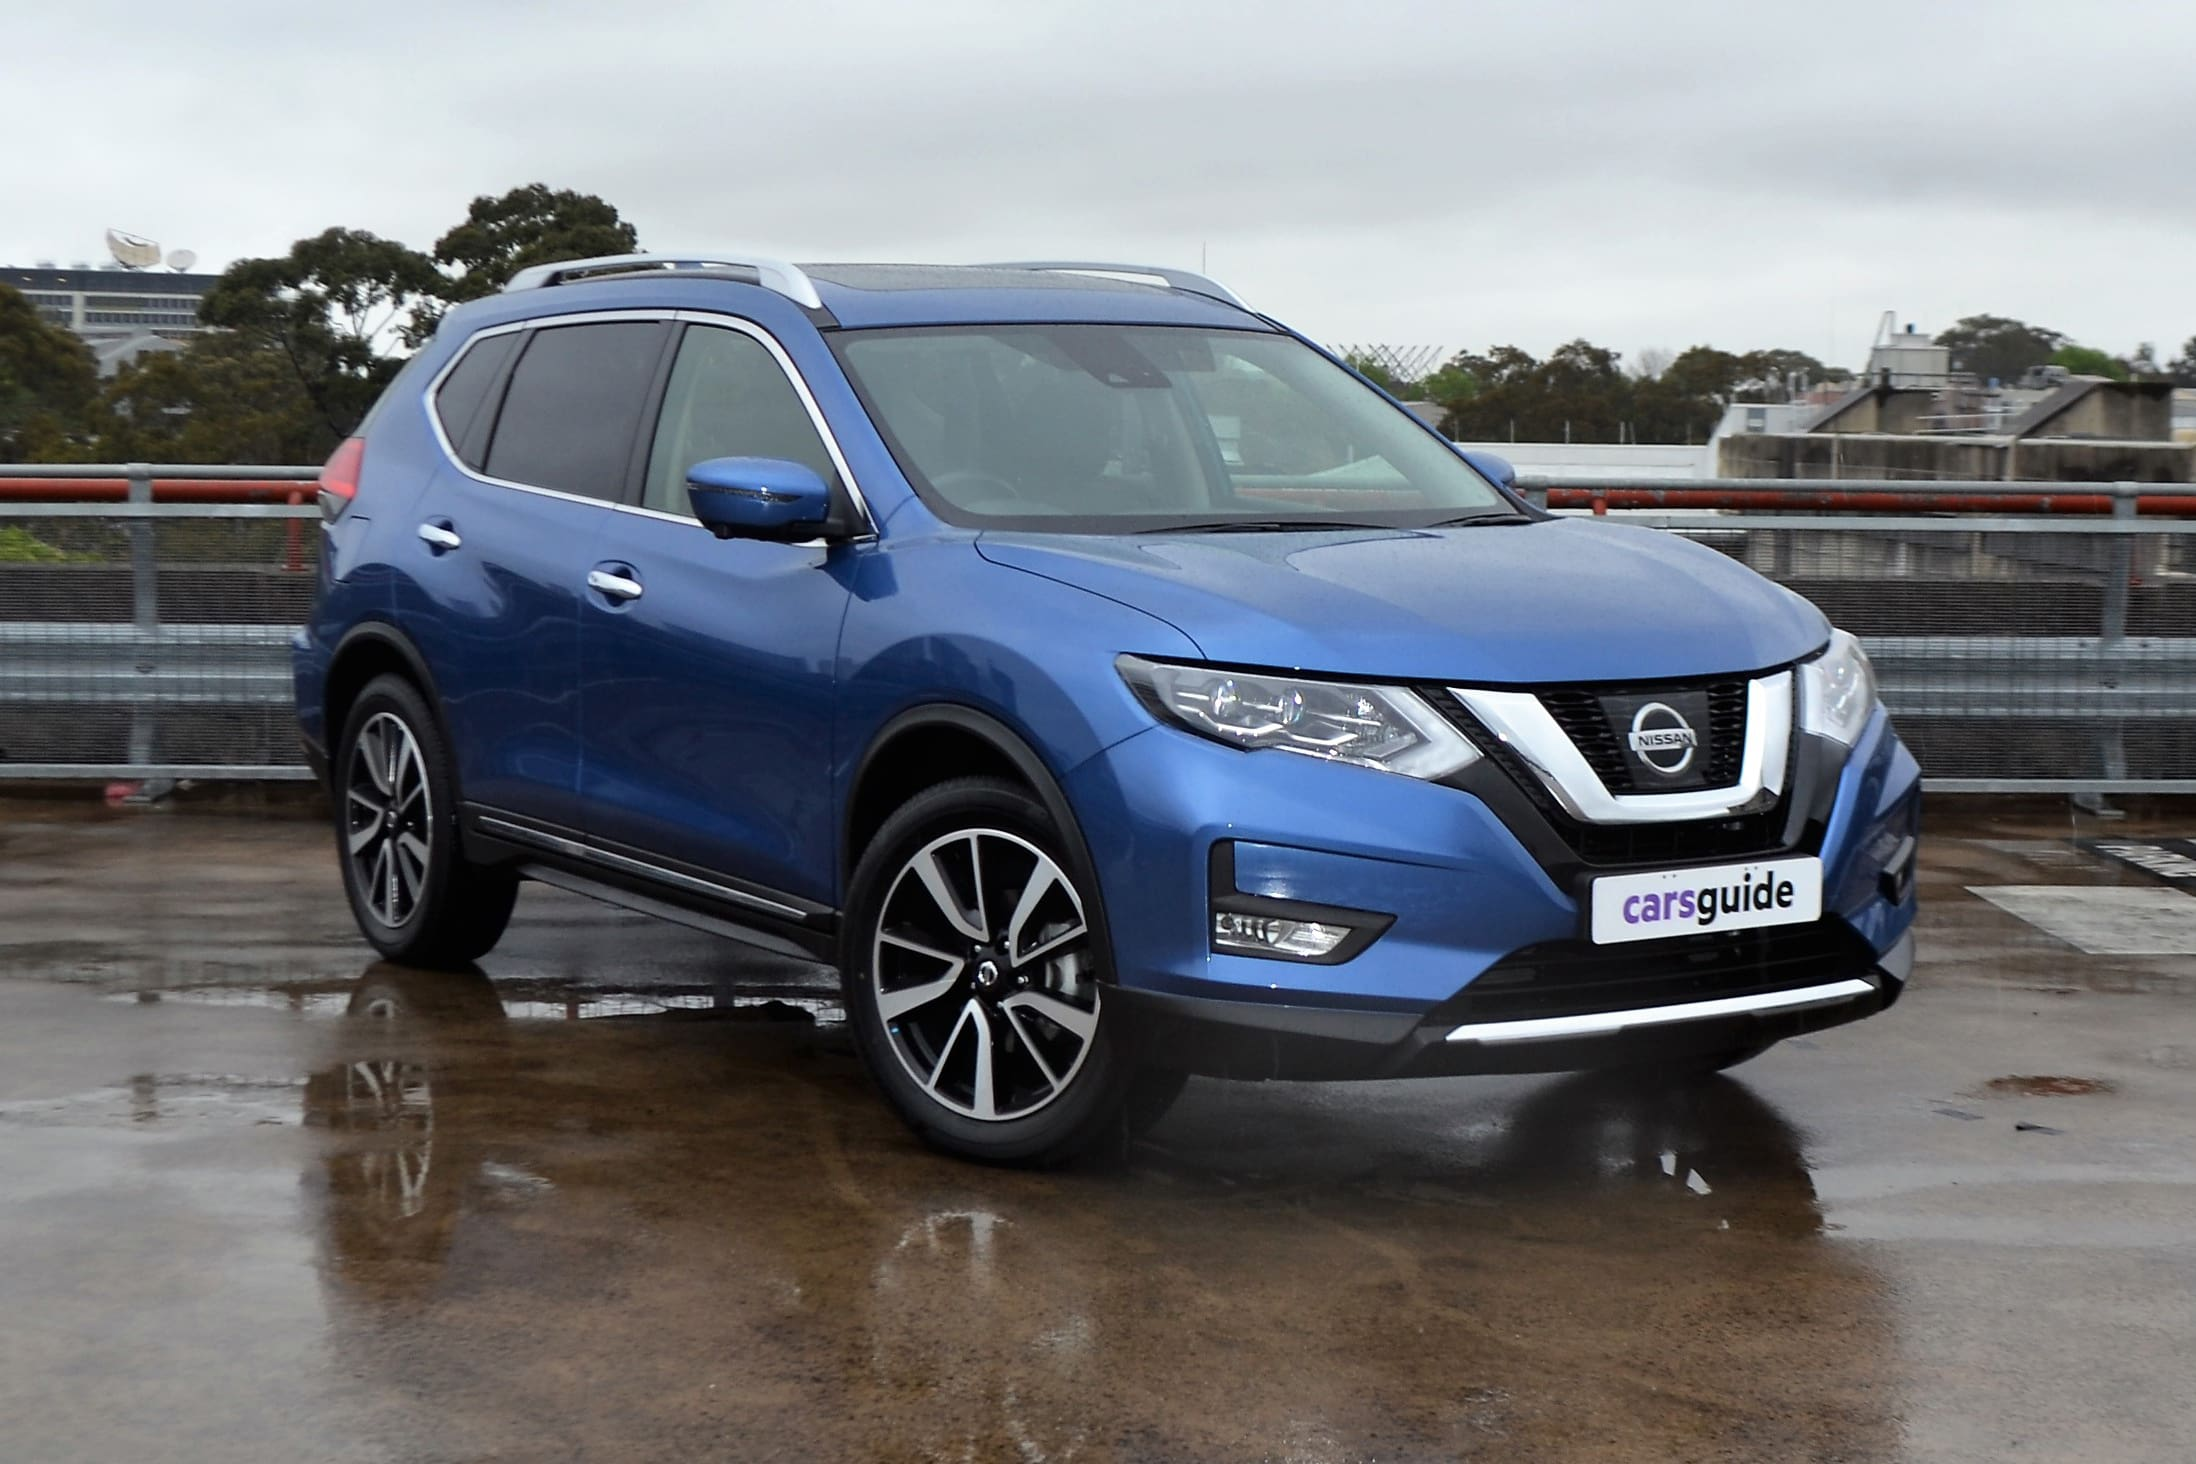 nissan x trail 2019 review ti carsguide. Black Bedroom Furniture Sets. Home Design Ideas